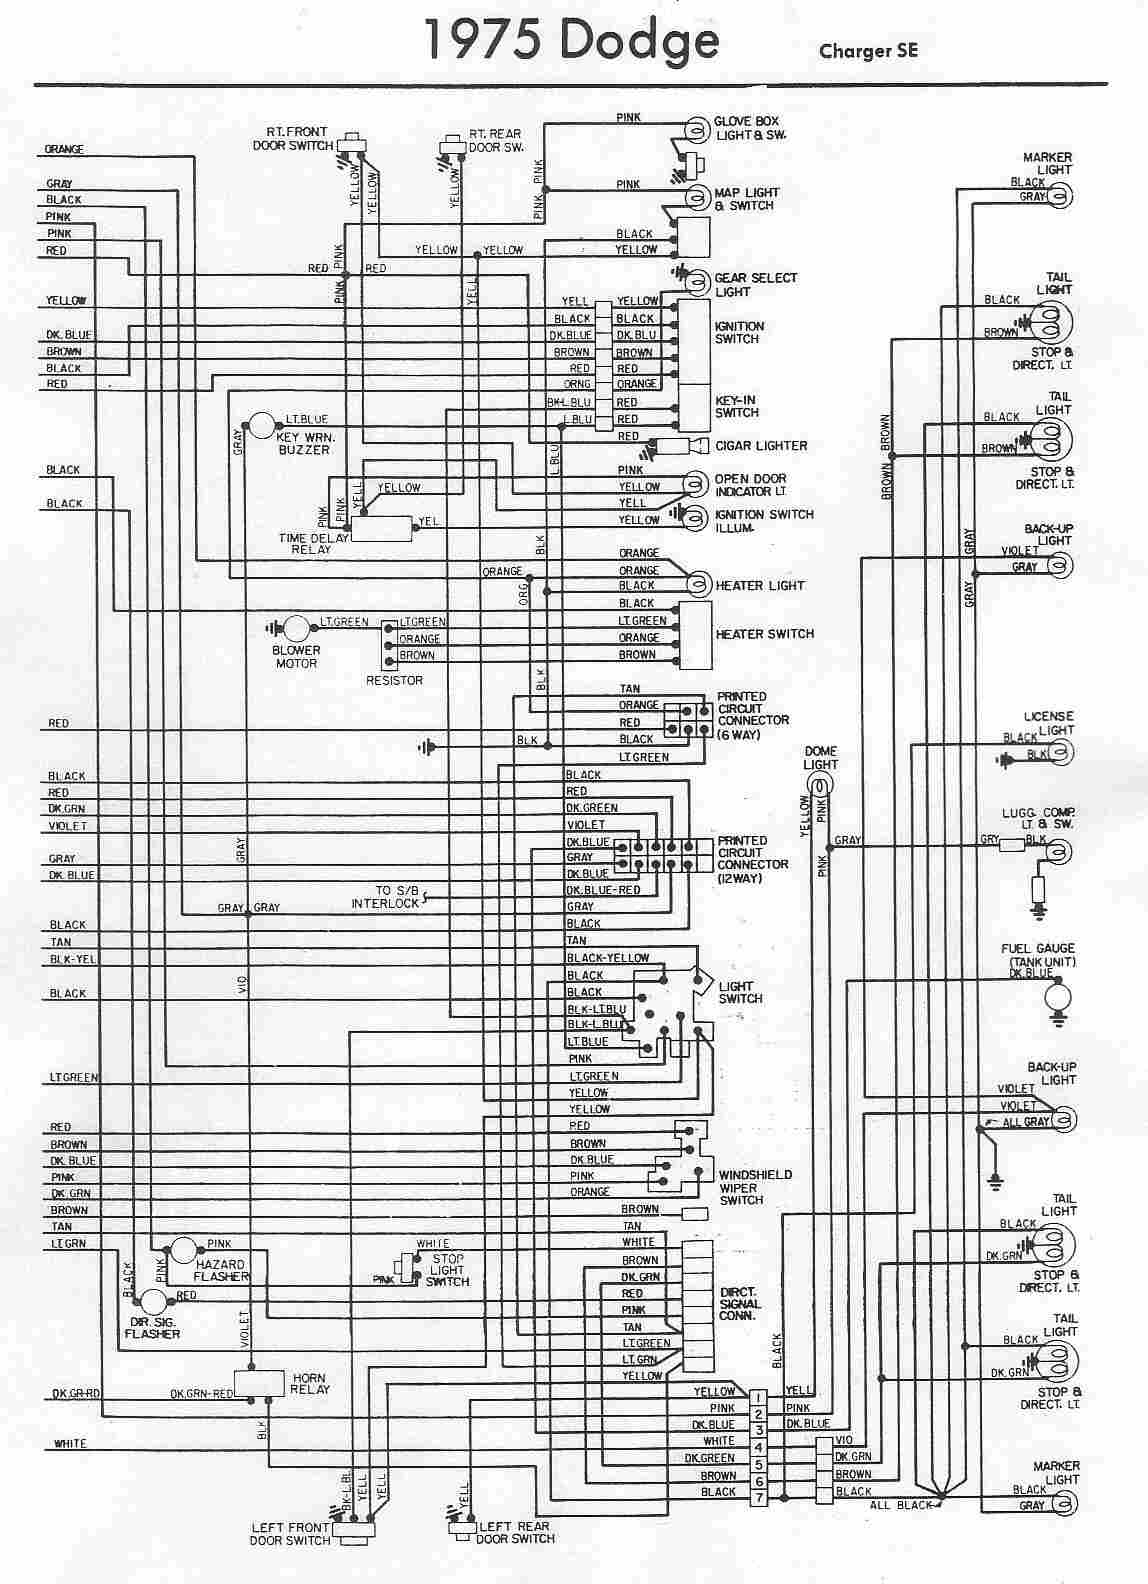 1972 Dodge Charger Starter Wiring Diagram For Light Switch 1969 Car Manuals Diagrams Pdf Fault Codes Rh Automotive Net 1971